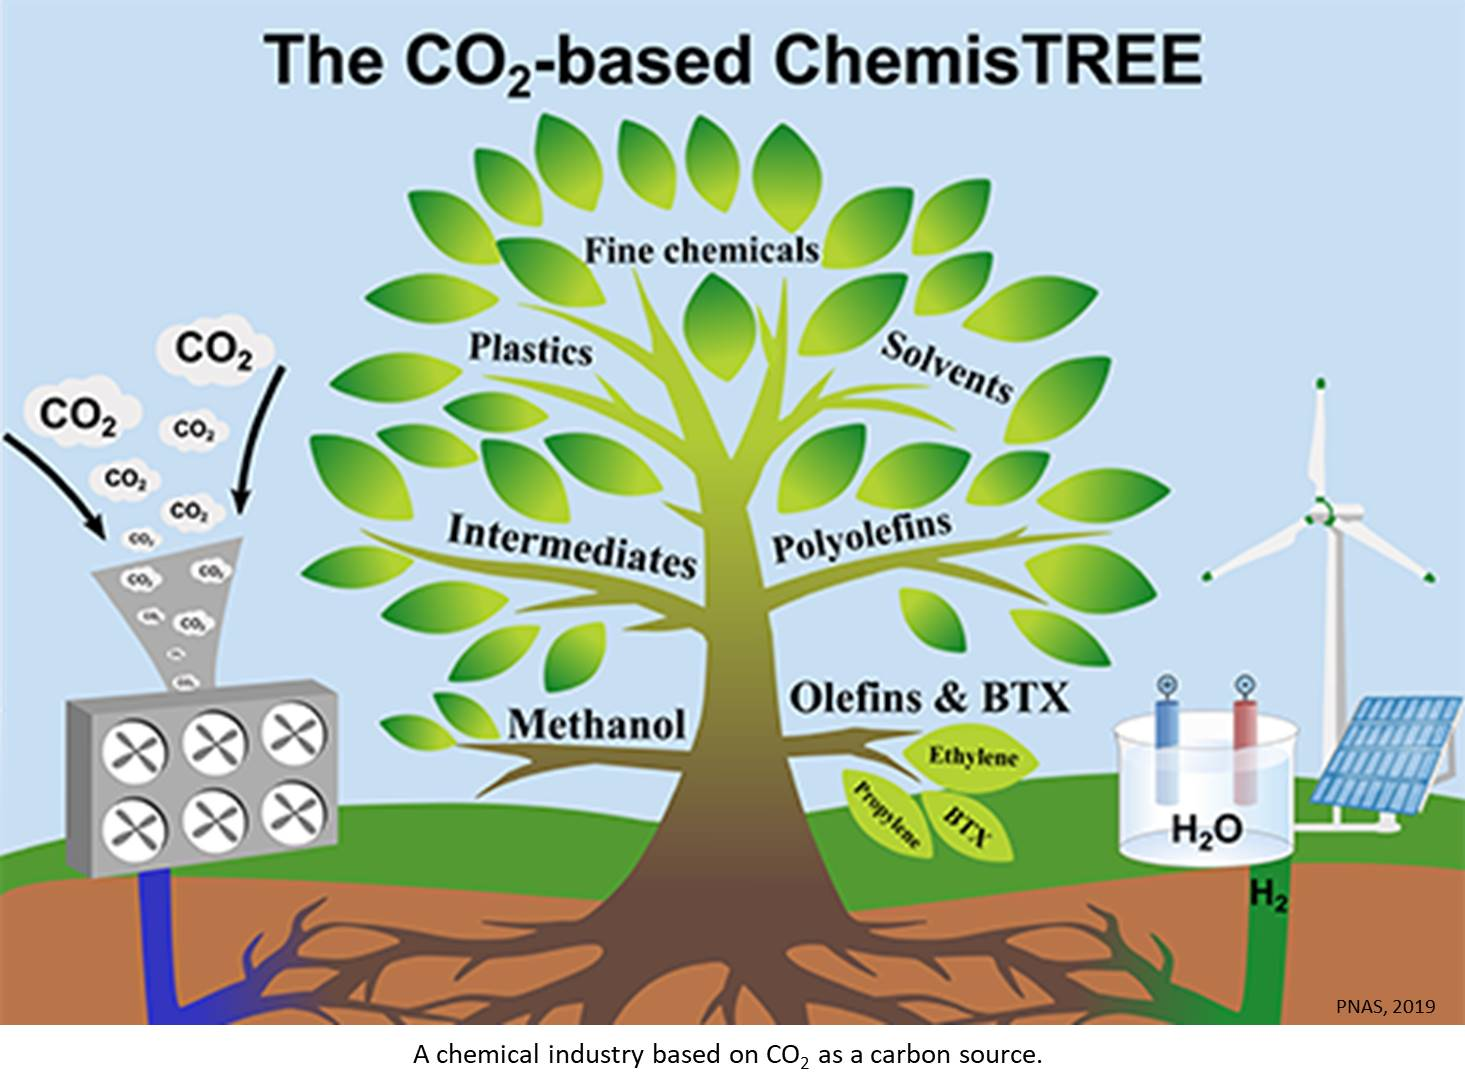 Carbon capture and utilization for chemicals